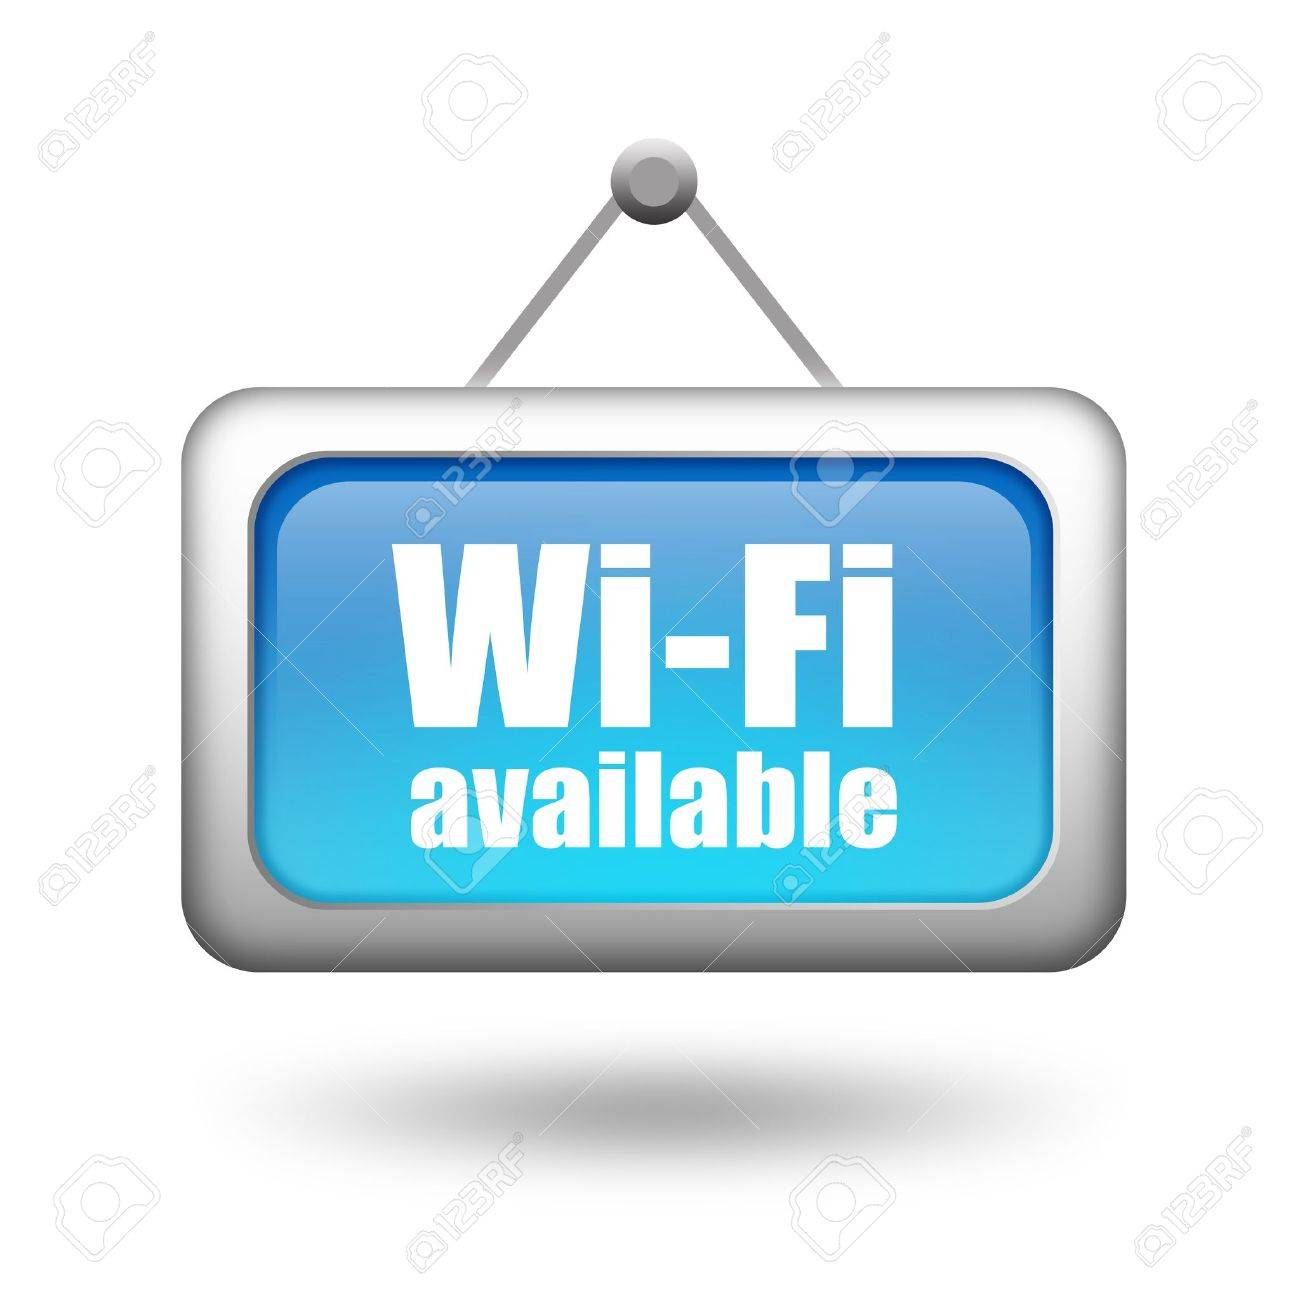 Wi-fi available sign Stock Photo - 16708580